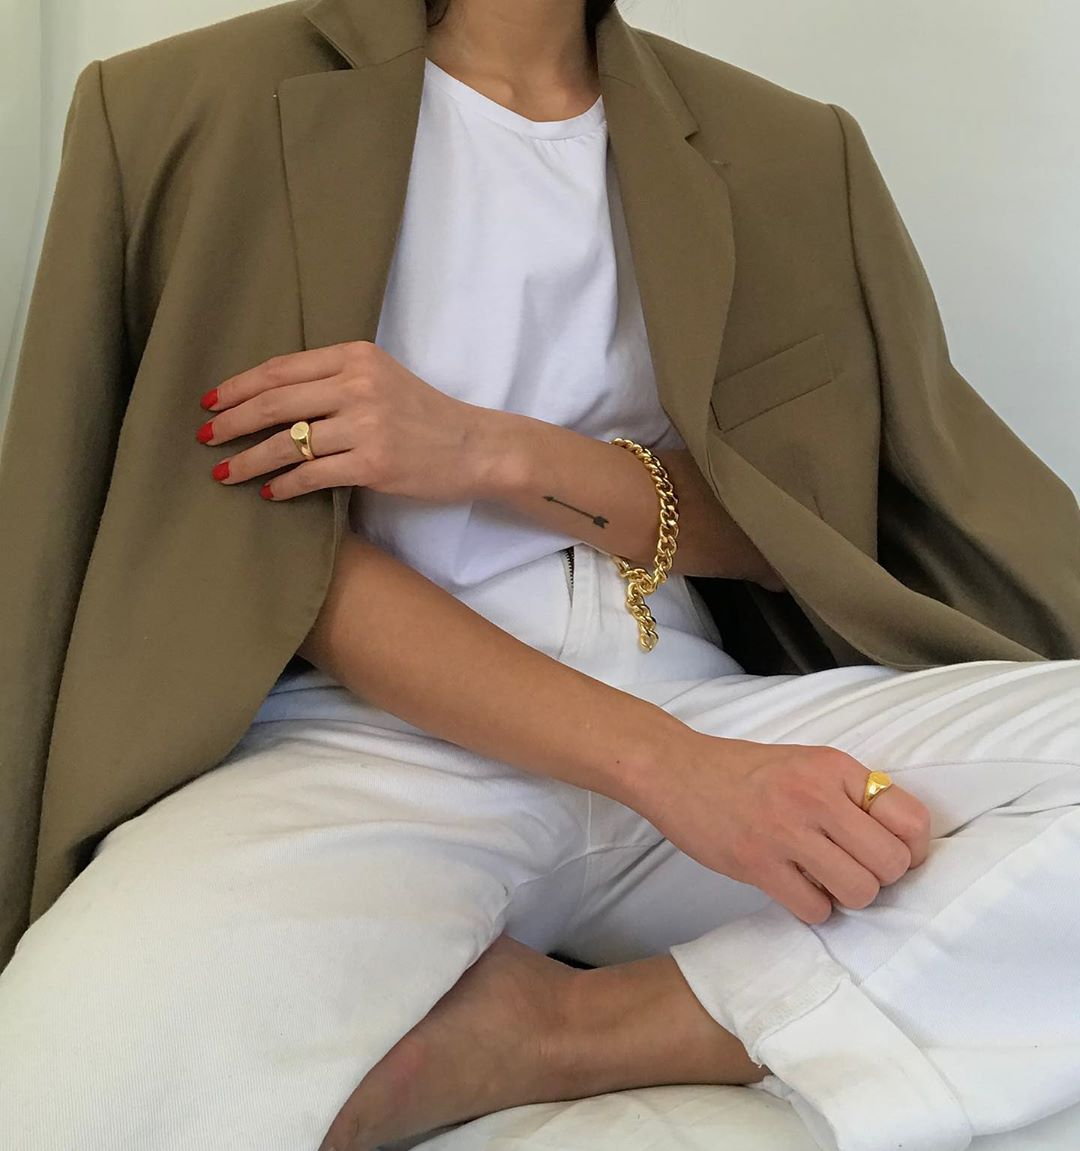 Neutral blazer, white t-shirt, signet rings, a chain bracelet, red nail polish, and off-white jeans